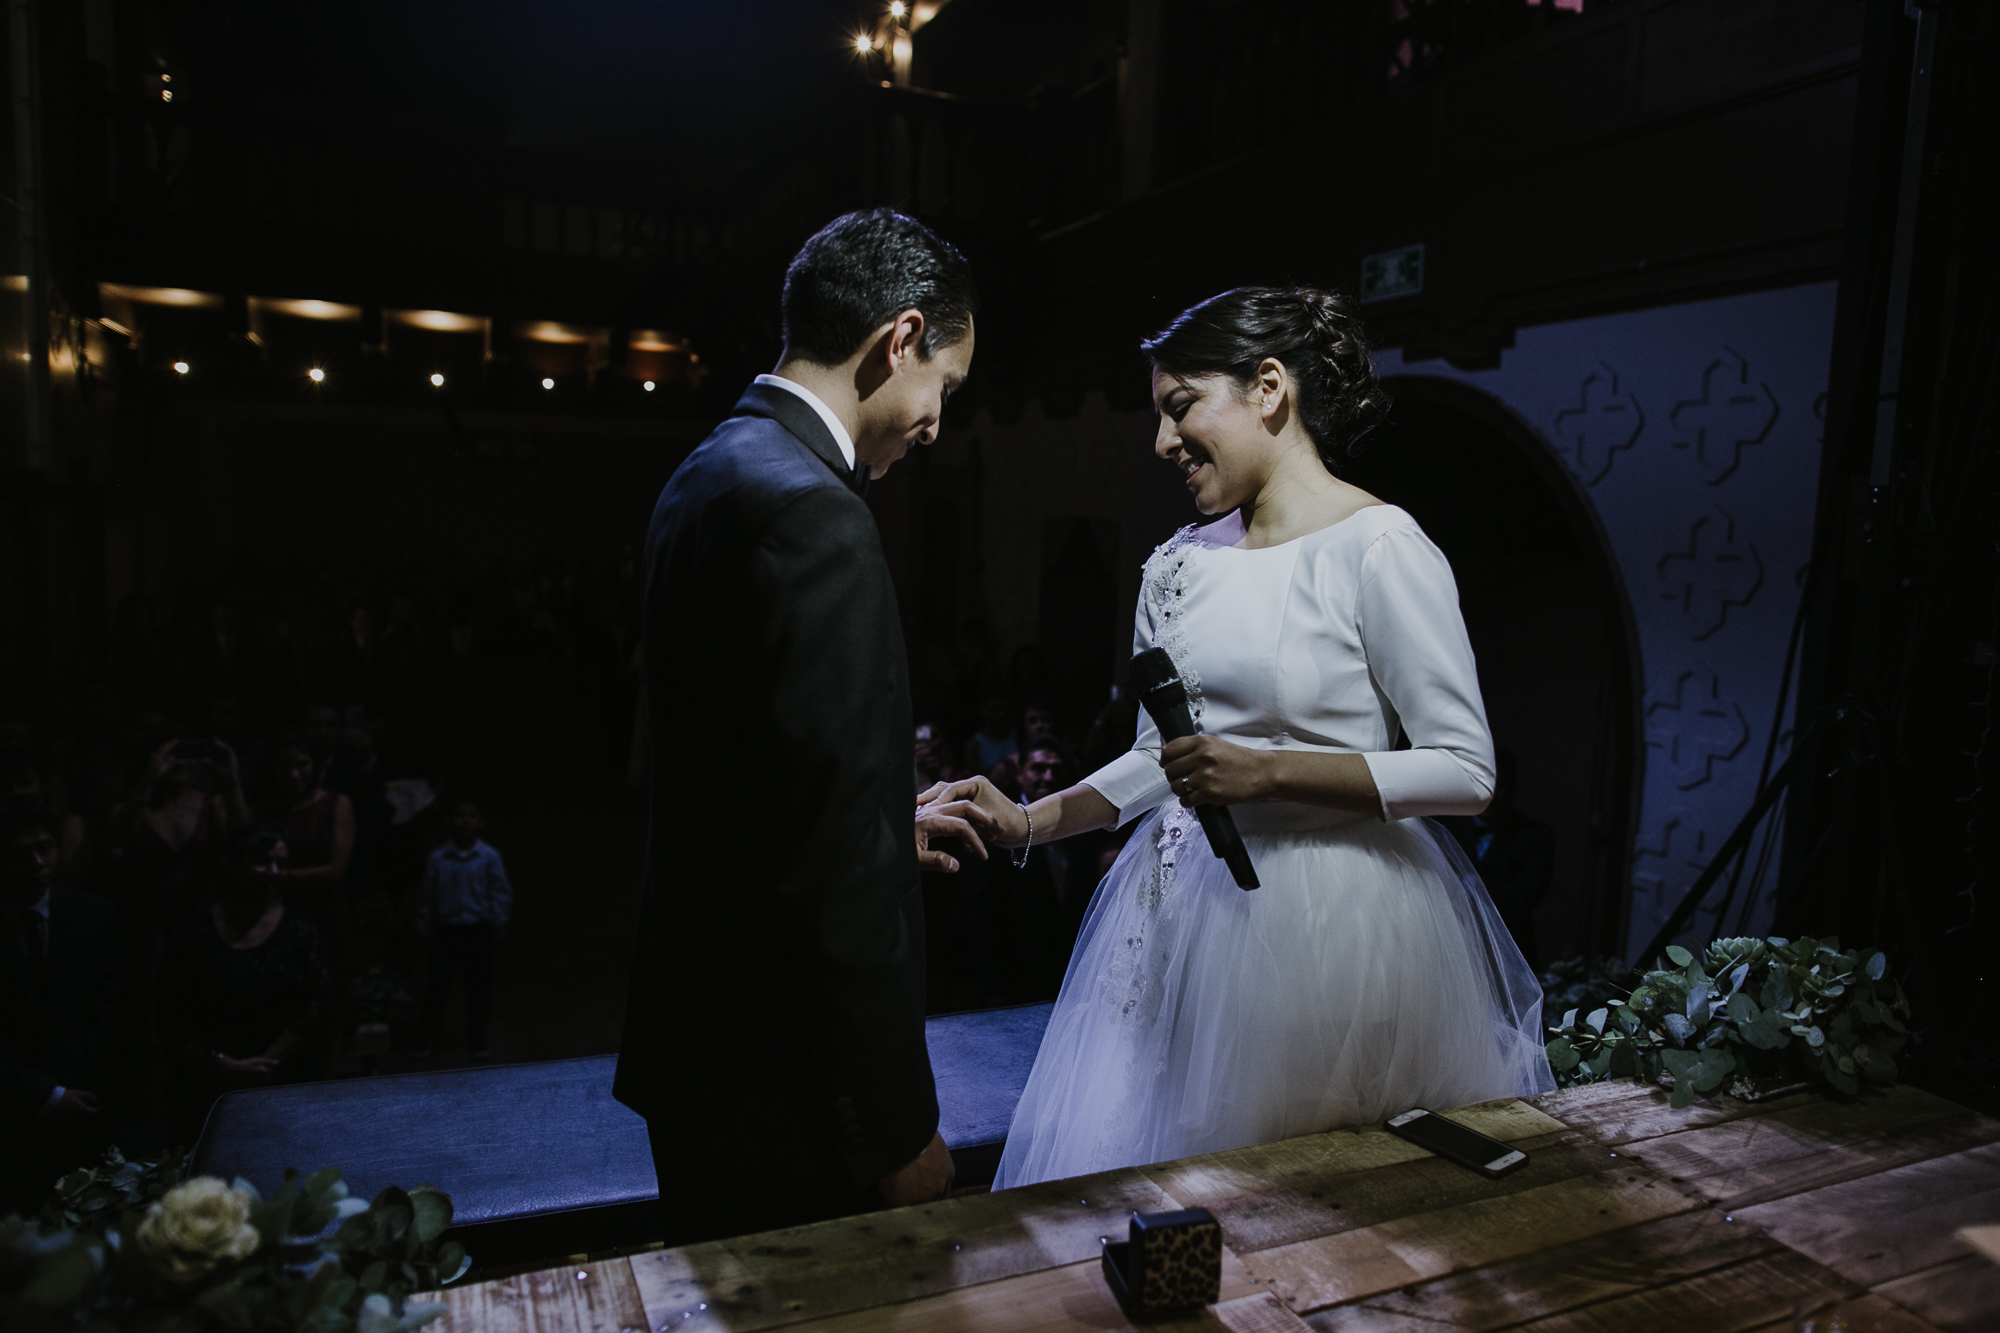 alfonso_flores_alternative_wedding_photographer_cdmx_roma_condesa_foro_indie_gissyotto-76.jpg